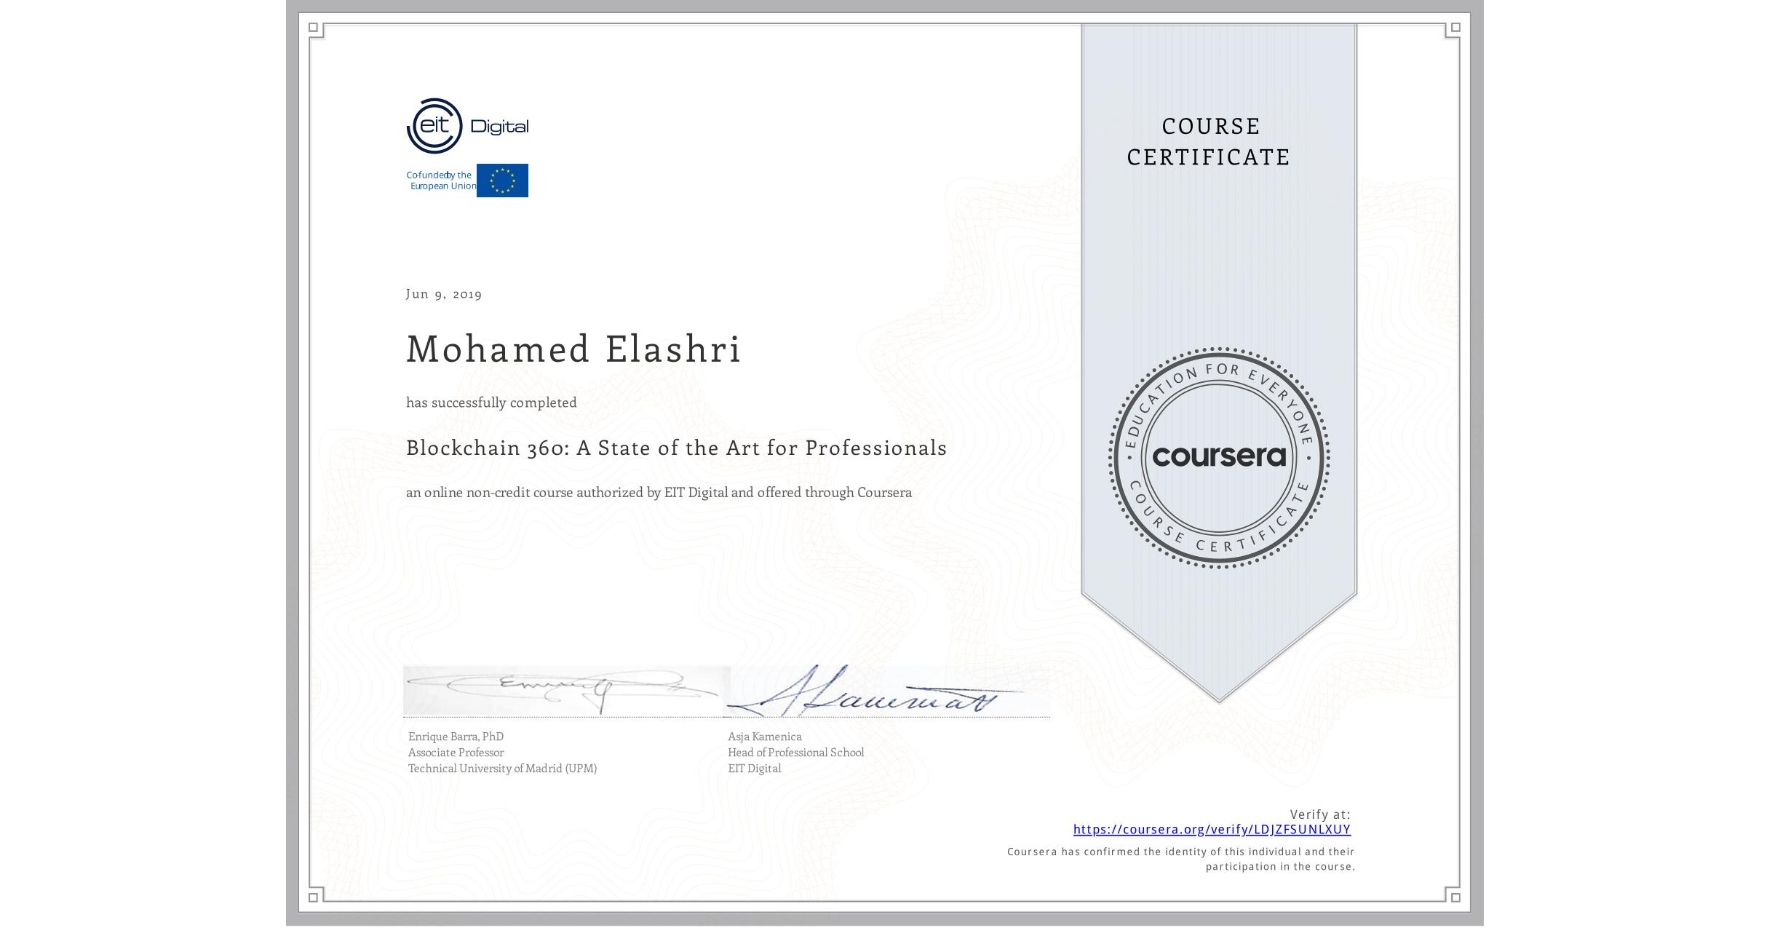 View certificate for Mohamed Elashri, Blockchain 360: A State of the Art for Professionals, an online non-credit course authorized by EIT Digital  and offered through Coursera